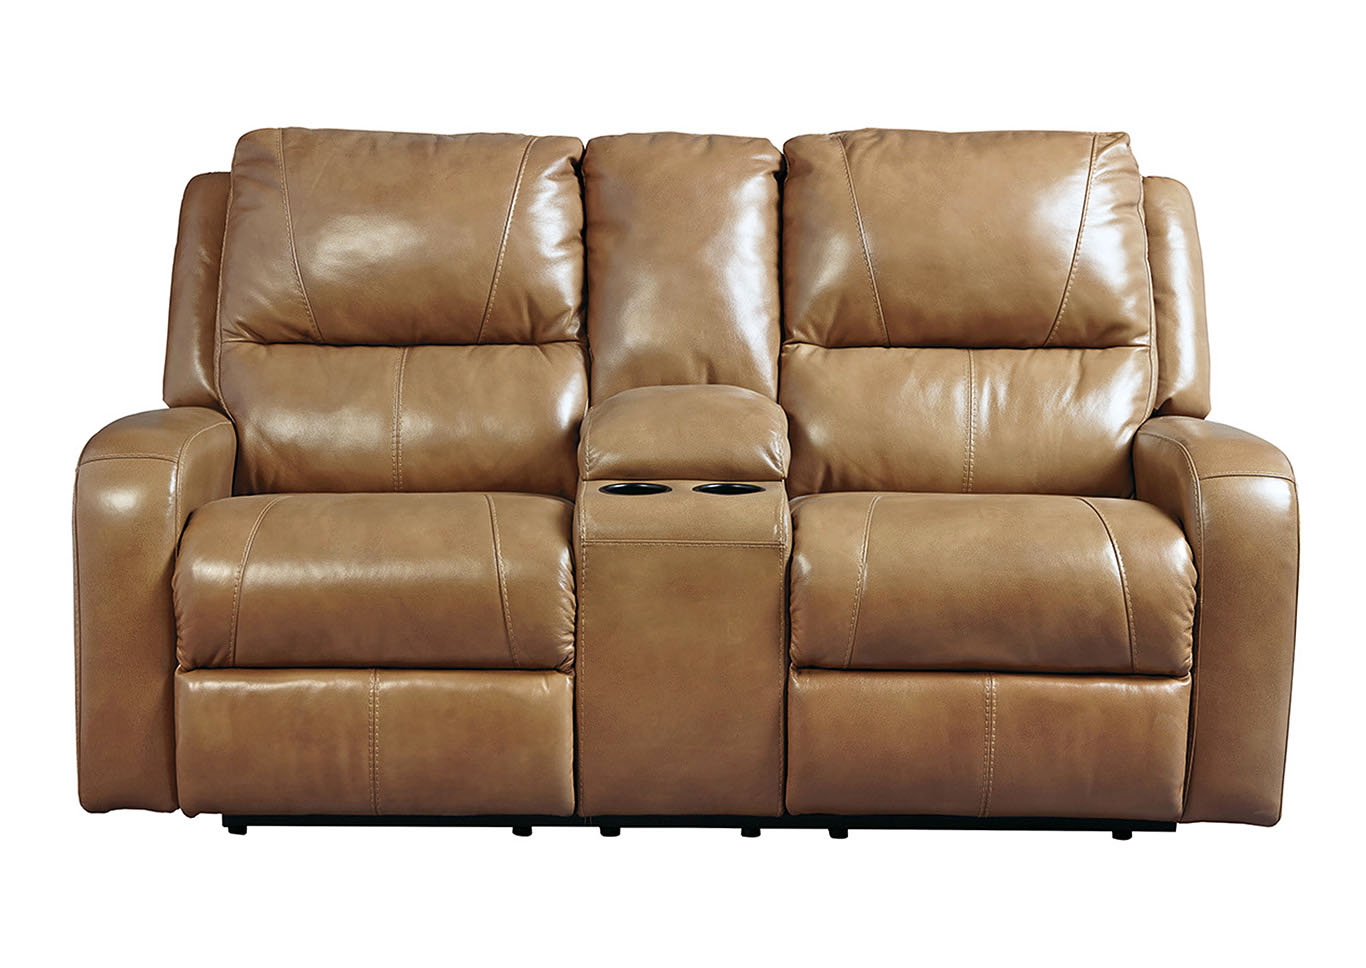 Kemper Sales Roogan Blondie Double Reclining Loveseat W Console